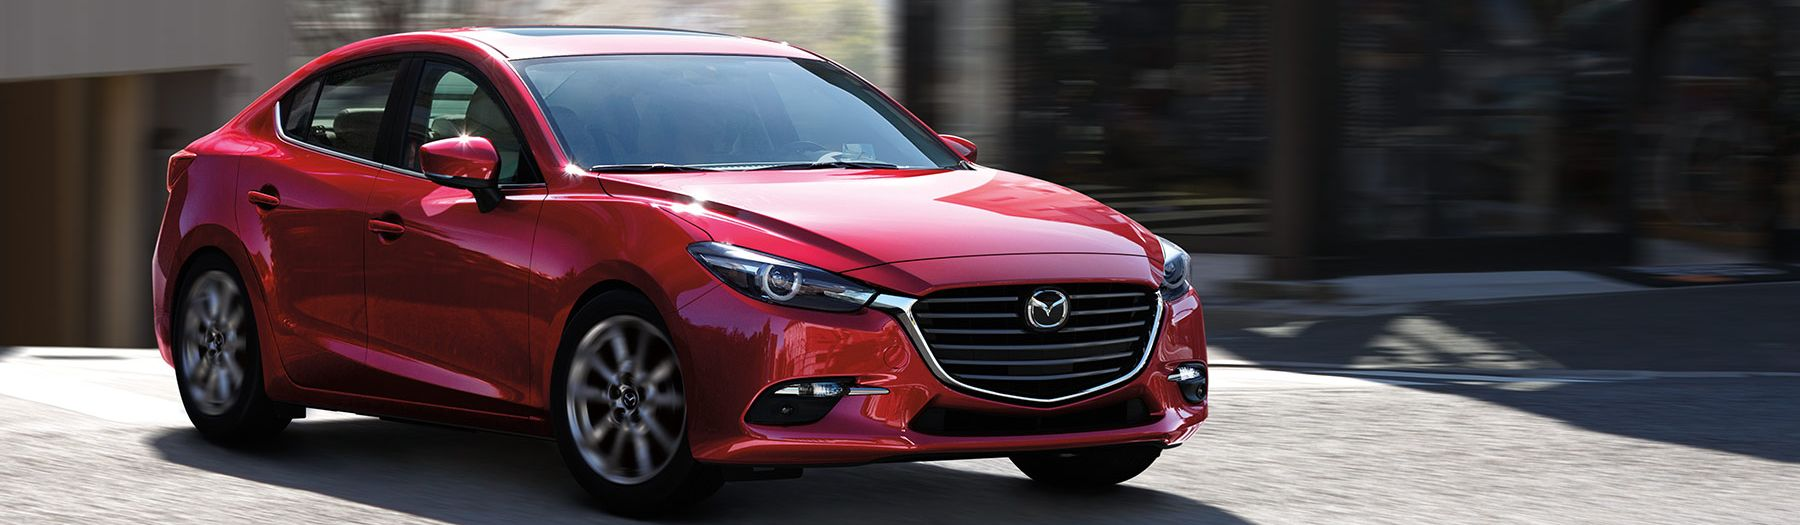 Mazda 3 Owners Manual: Climate Control System